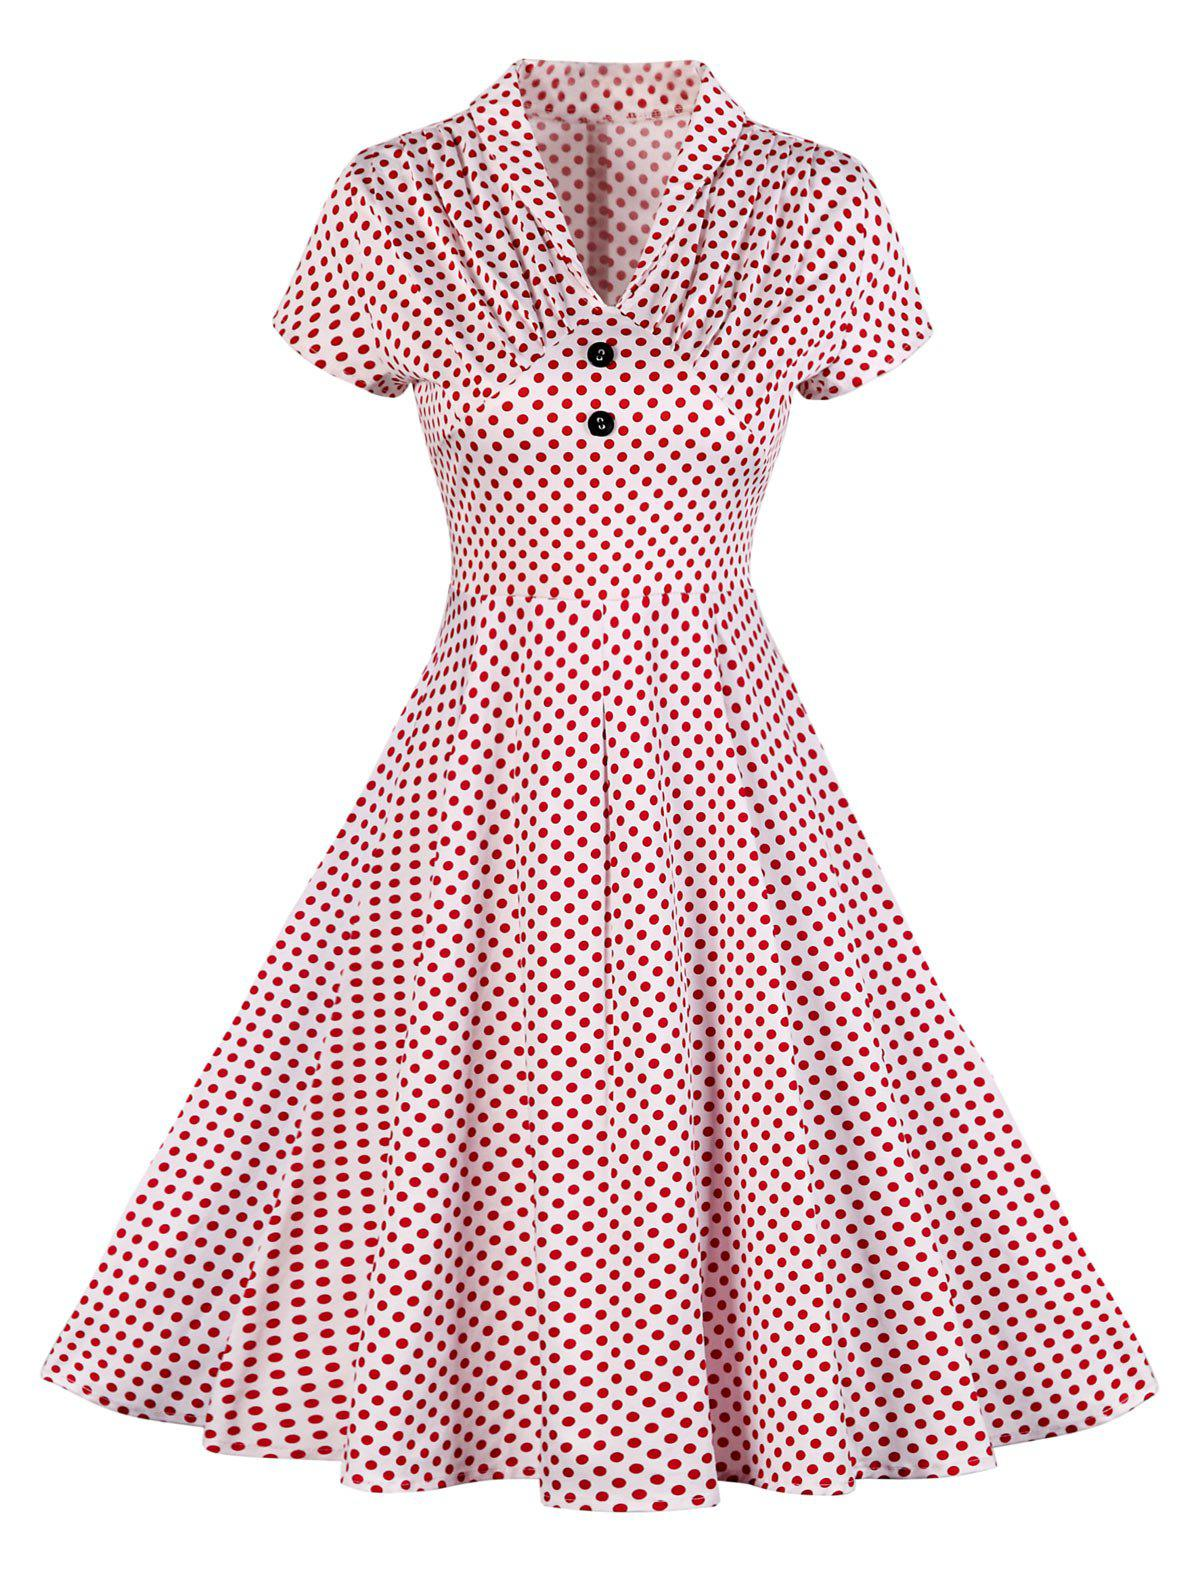 New Buttoned Polka Dot V Neck Skater Dress